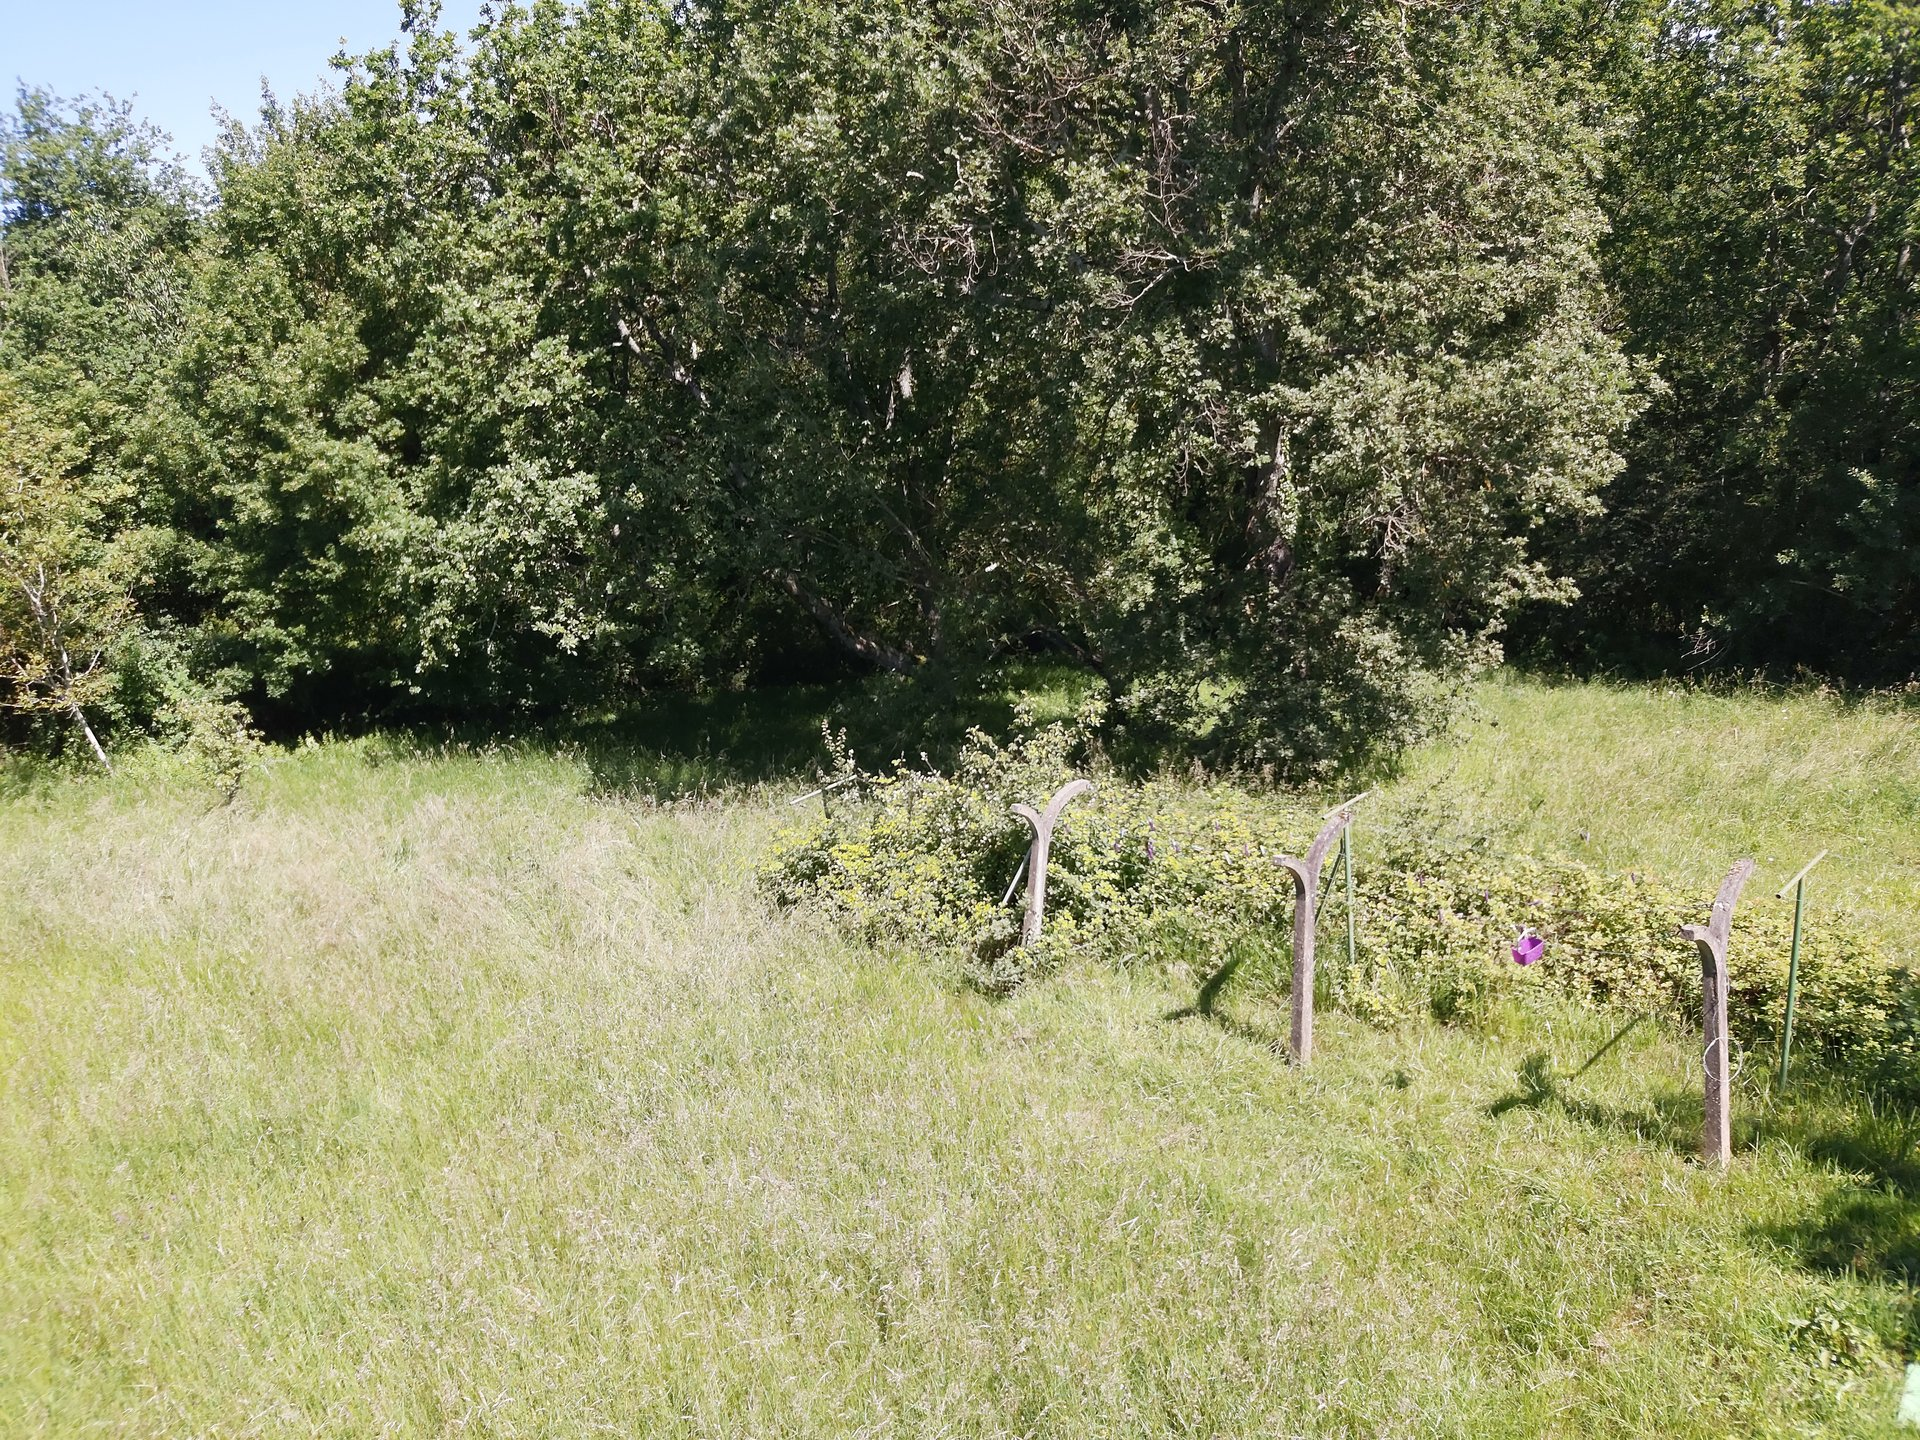 A rare opportunity in Aurignac, 1700 m² building plot with orchard and oaks trees